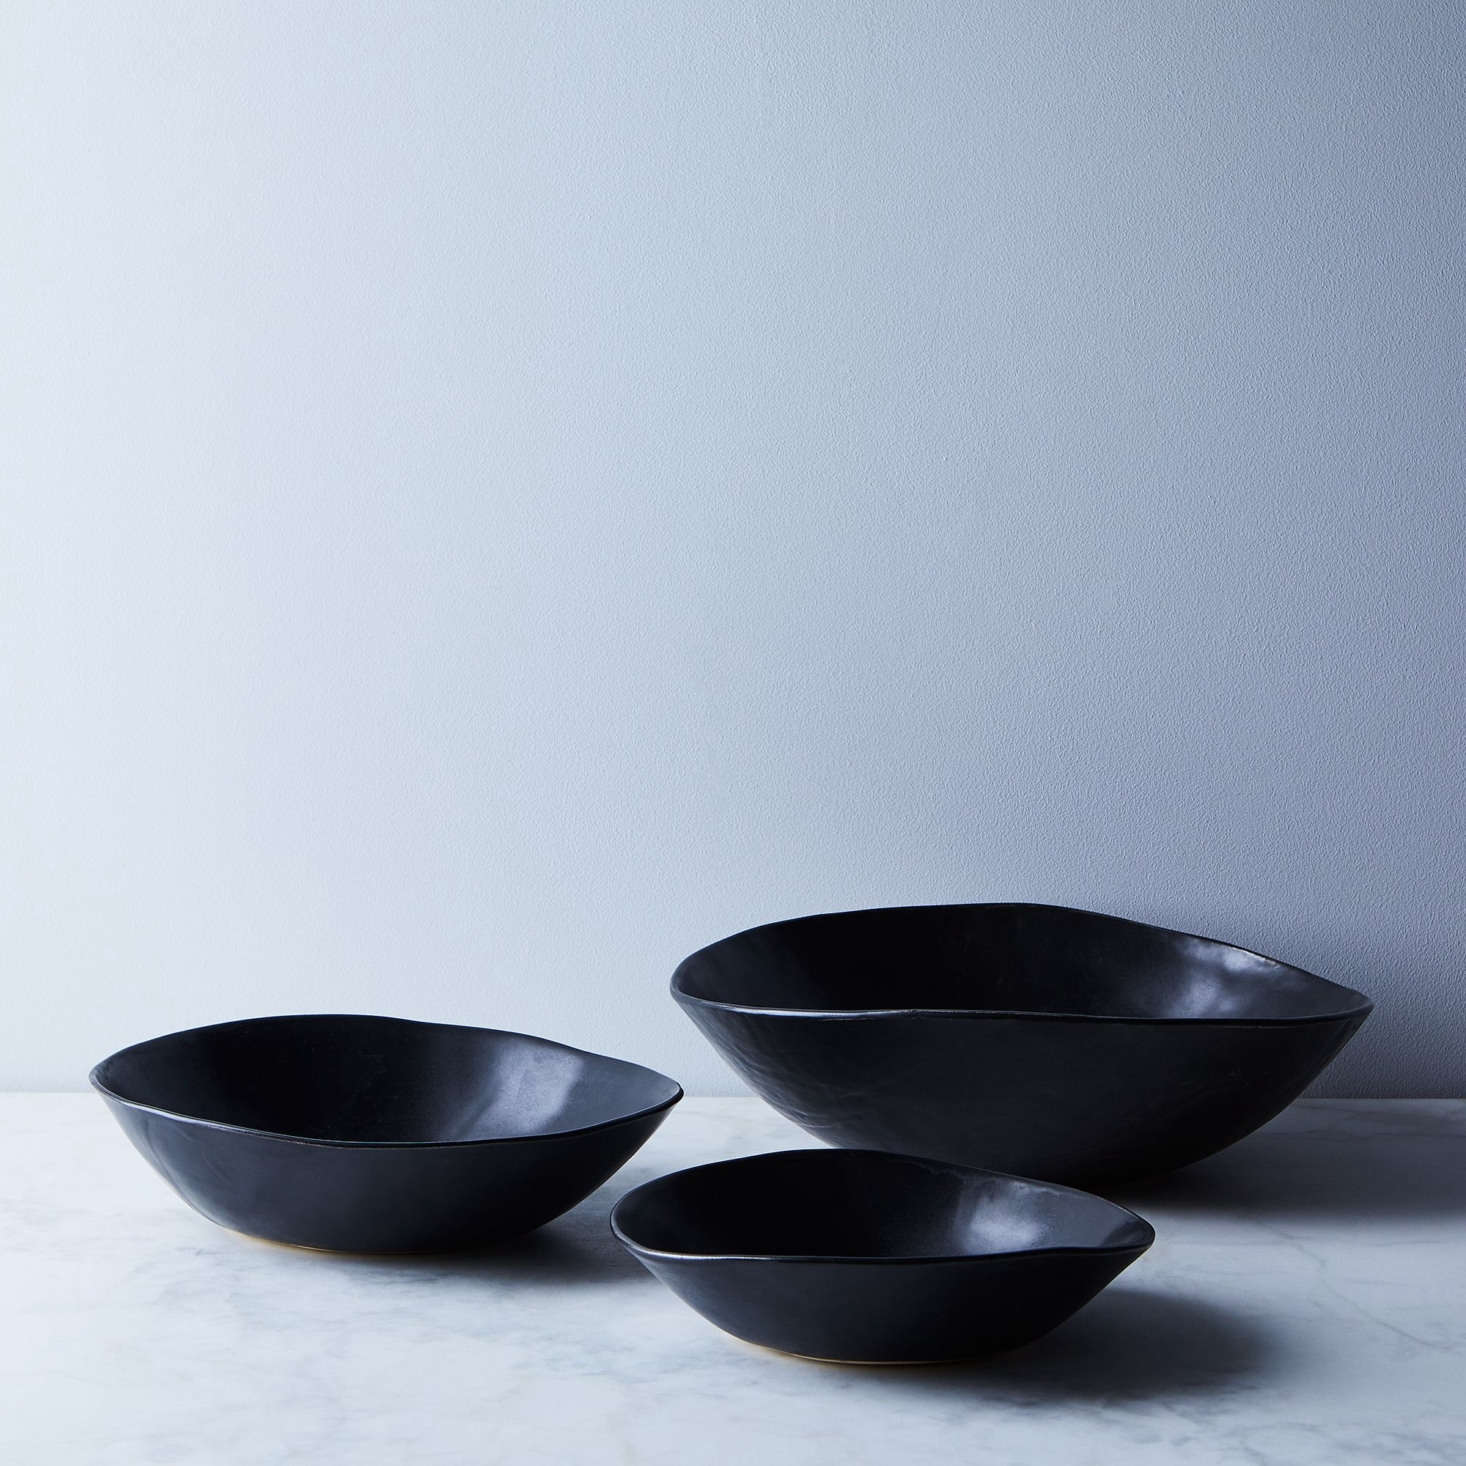 Ceramicist Julie Hadley hand-makes and glazes each bowl herself. Her Wabi Sabi Nesting Bowls come in black and cream; $5 at Food5